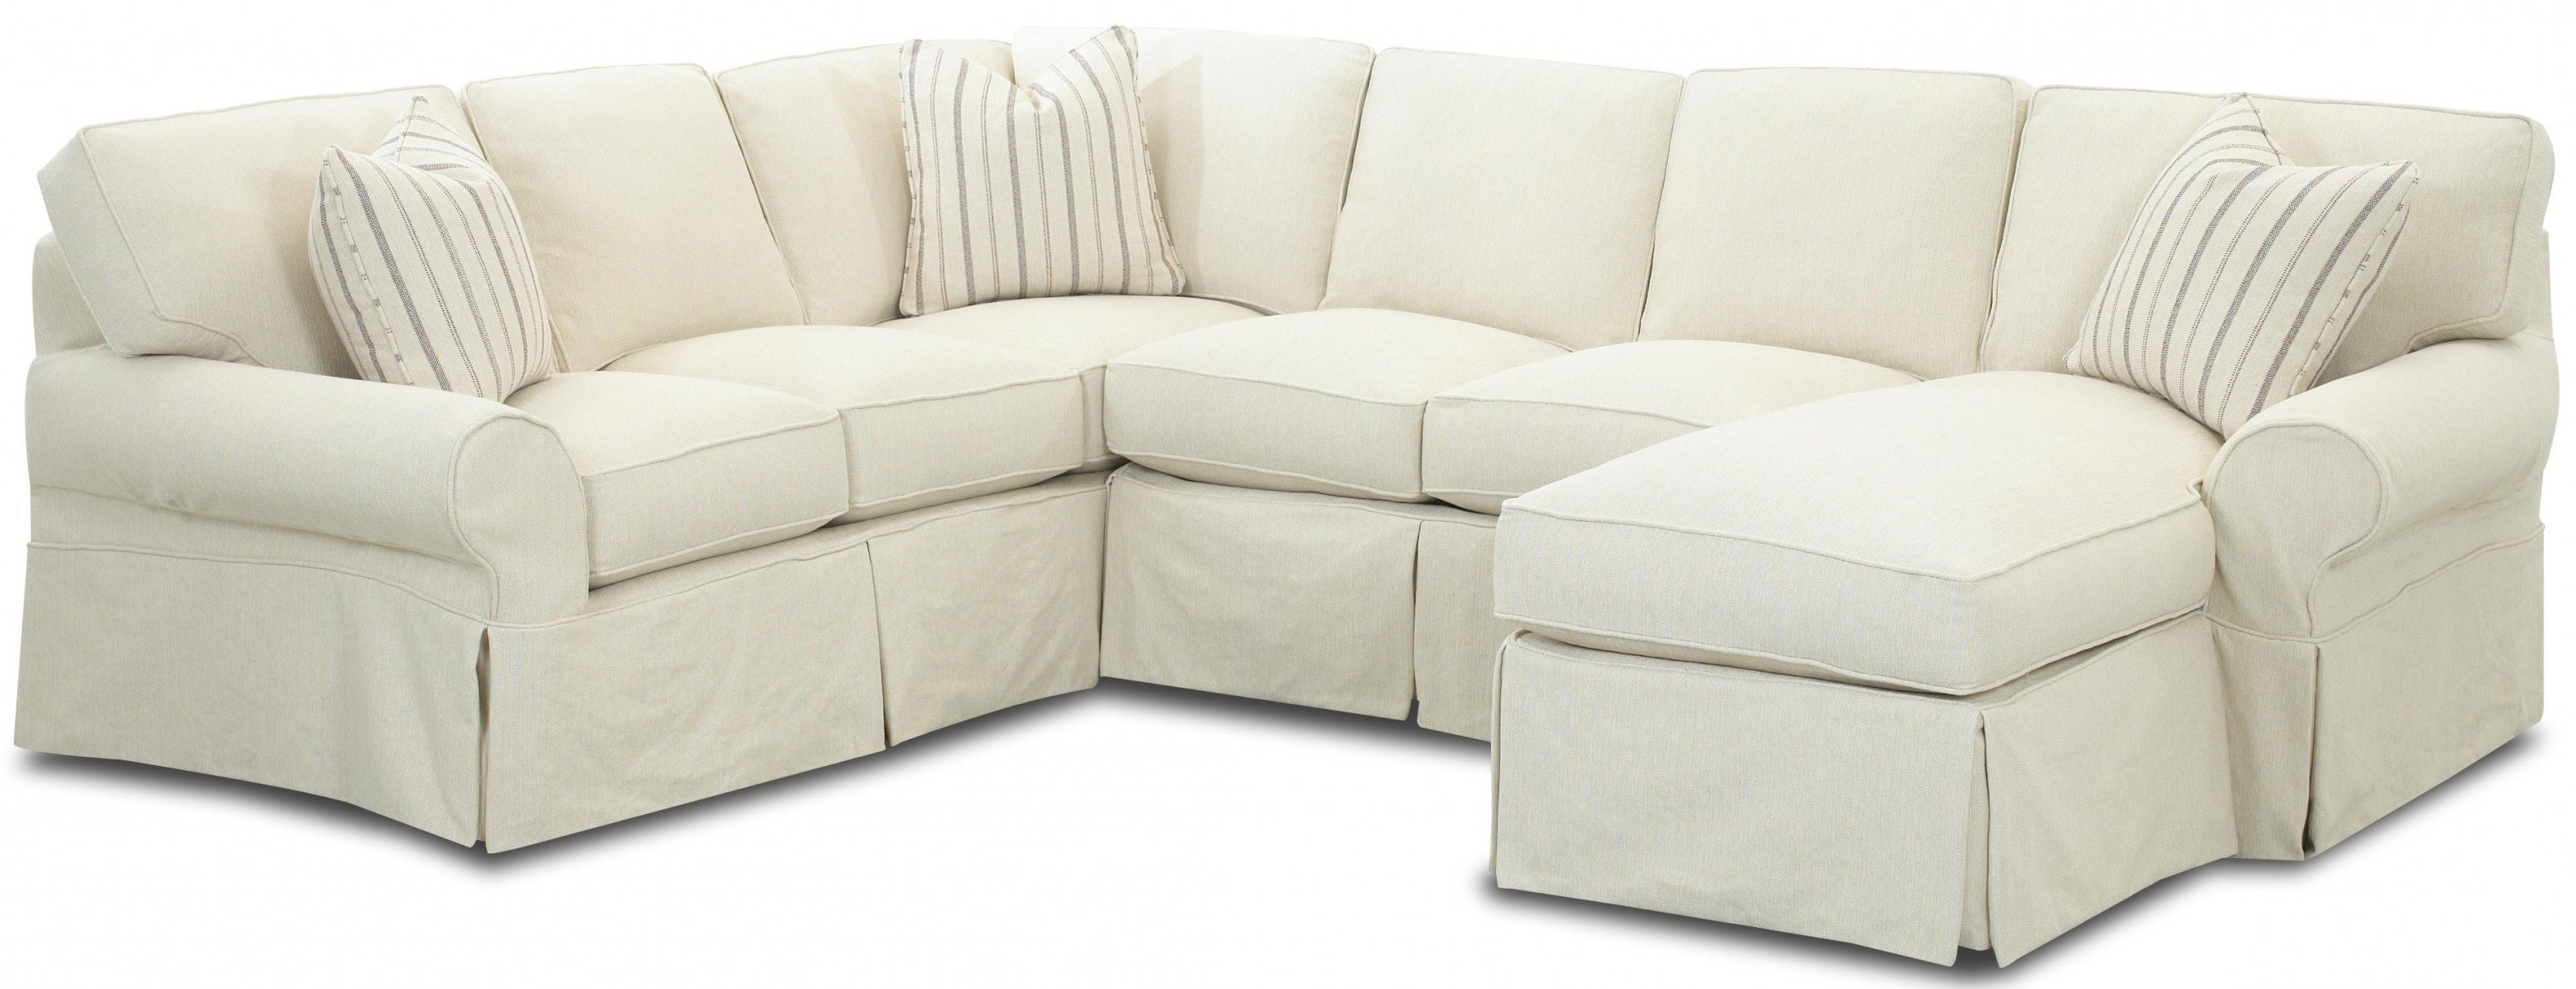 Fashionable Slipcover Sectional Sofa With Chaise 75 In Office Sofa Ideas Intended For Slipcover Sectional Sofas With Chaise (View 5 of 15)